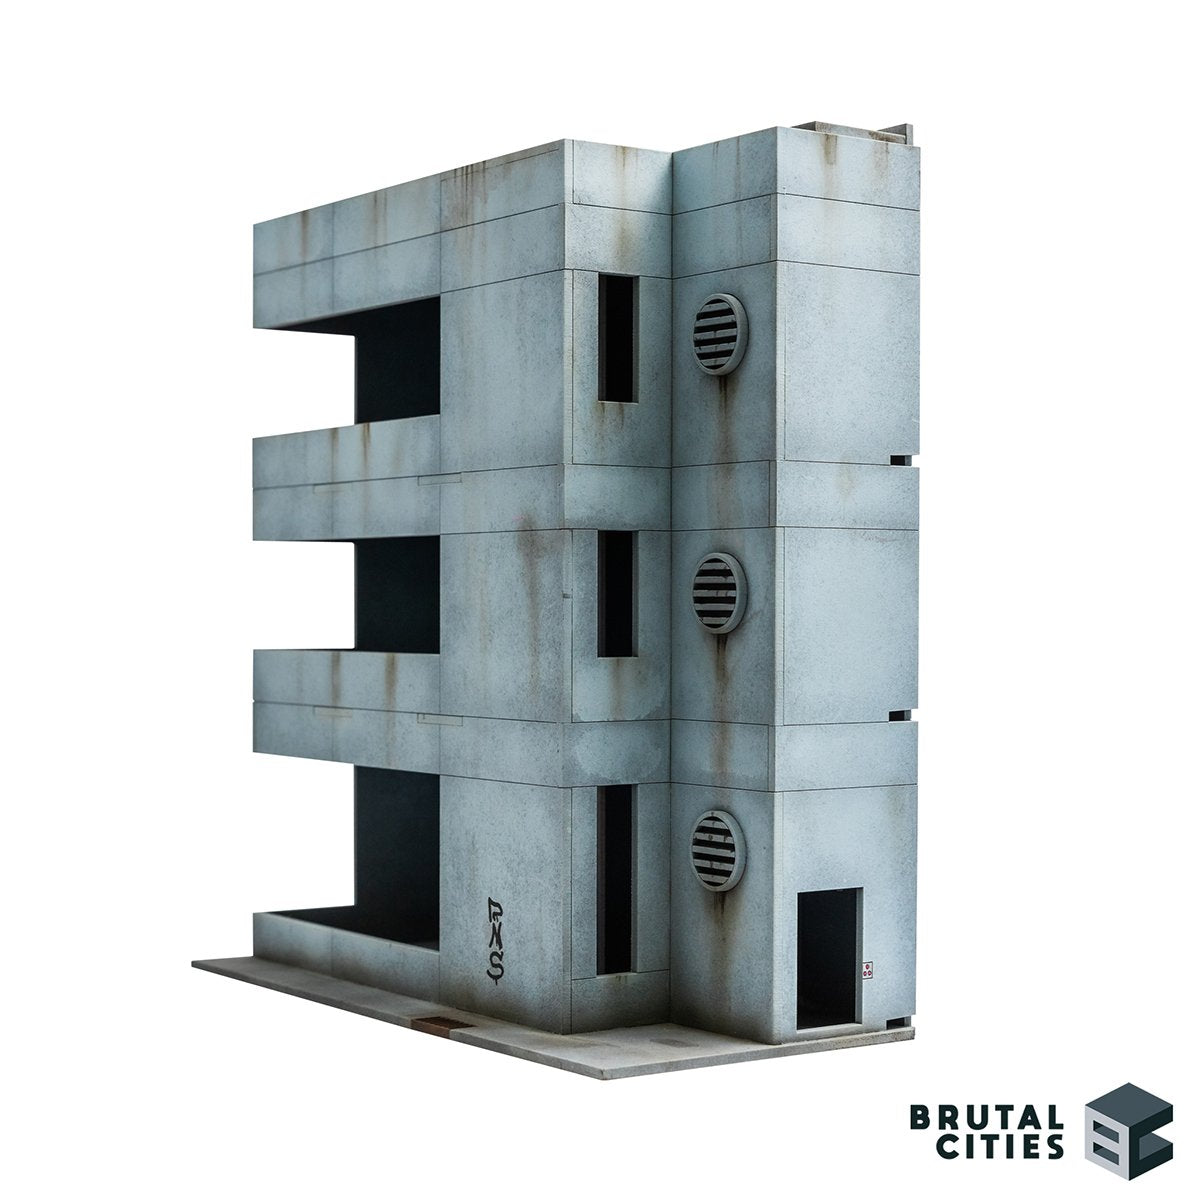 Minimalist concrete brutalist office building for wargaming